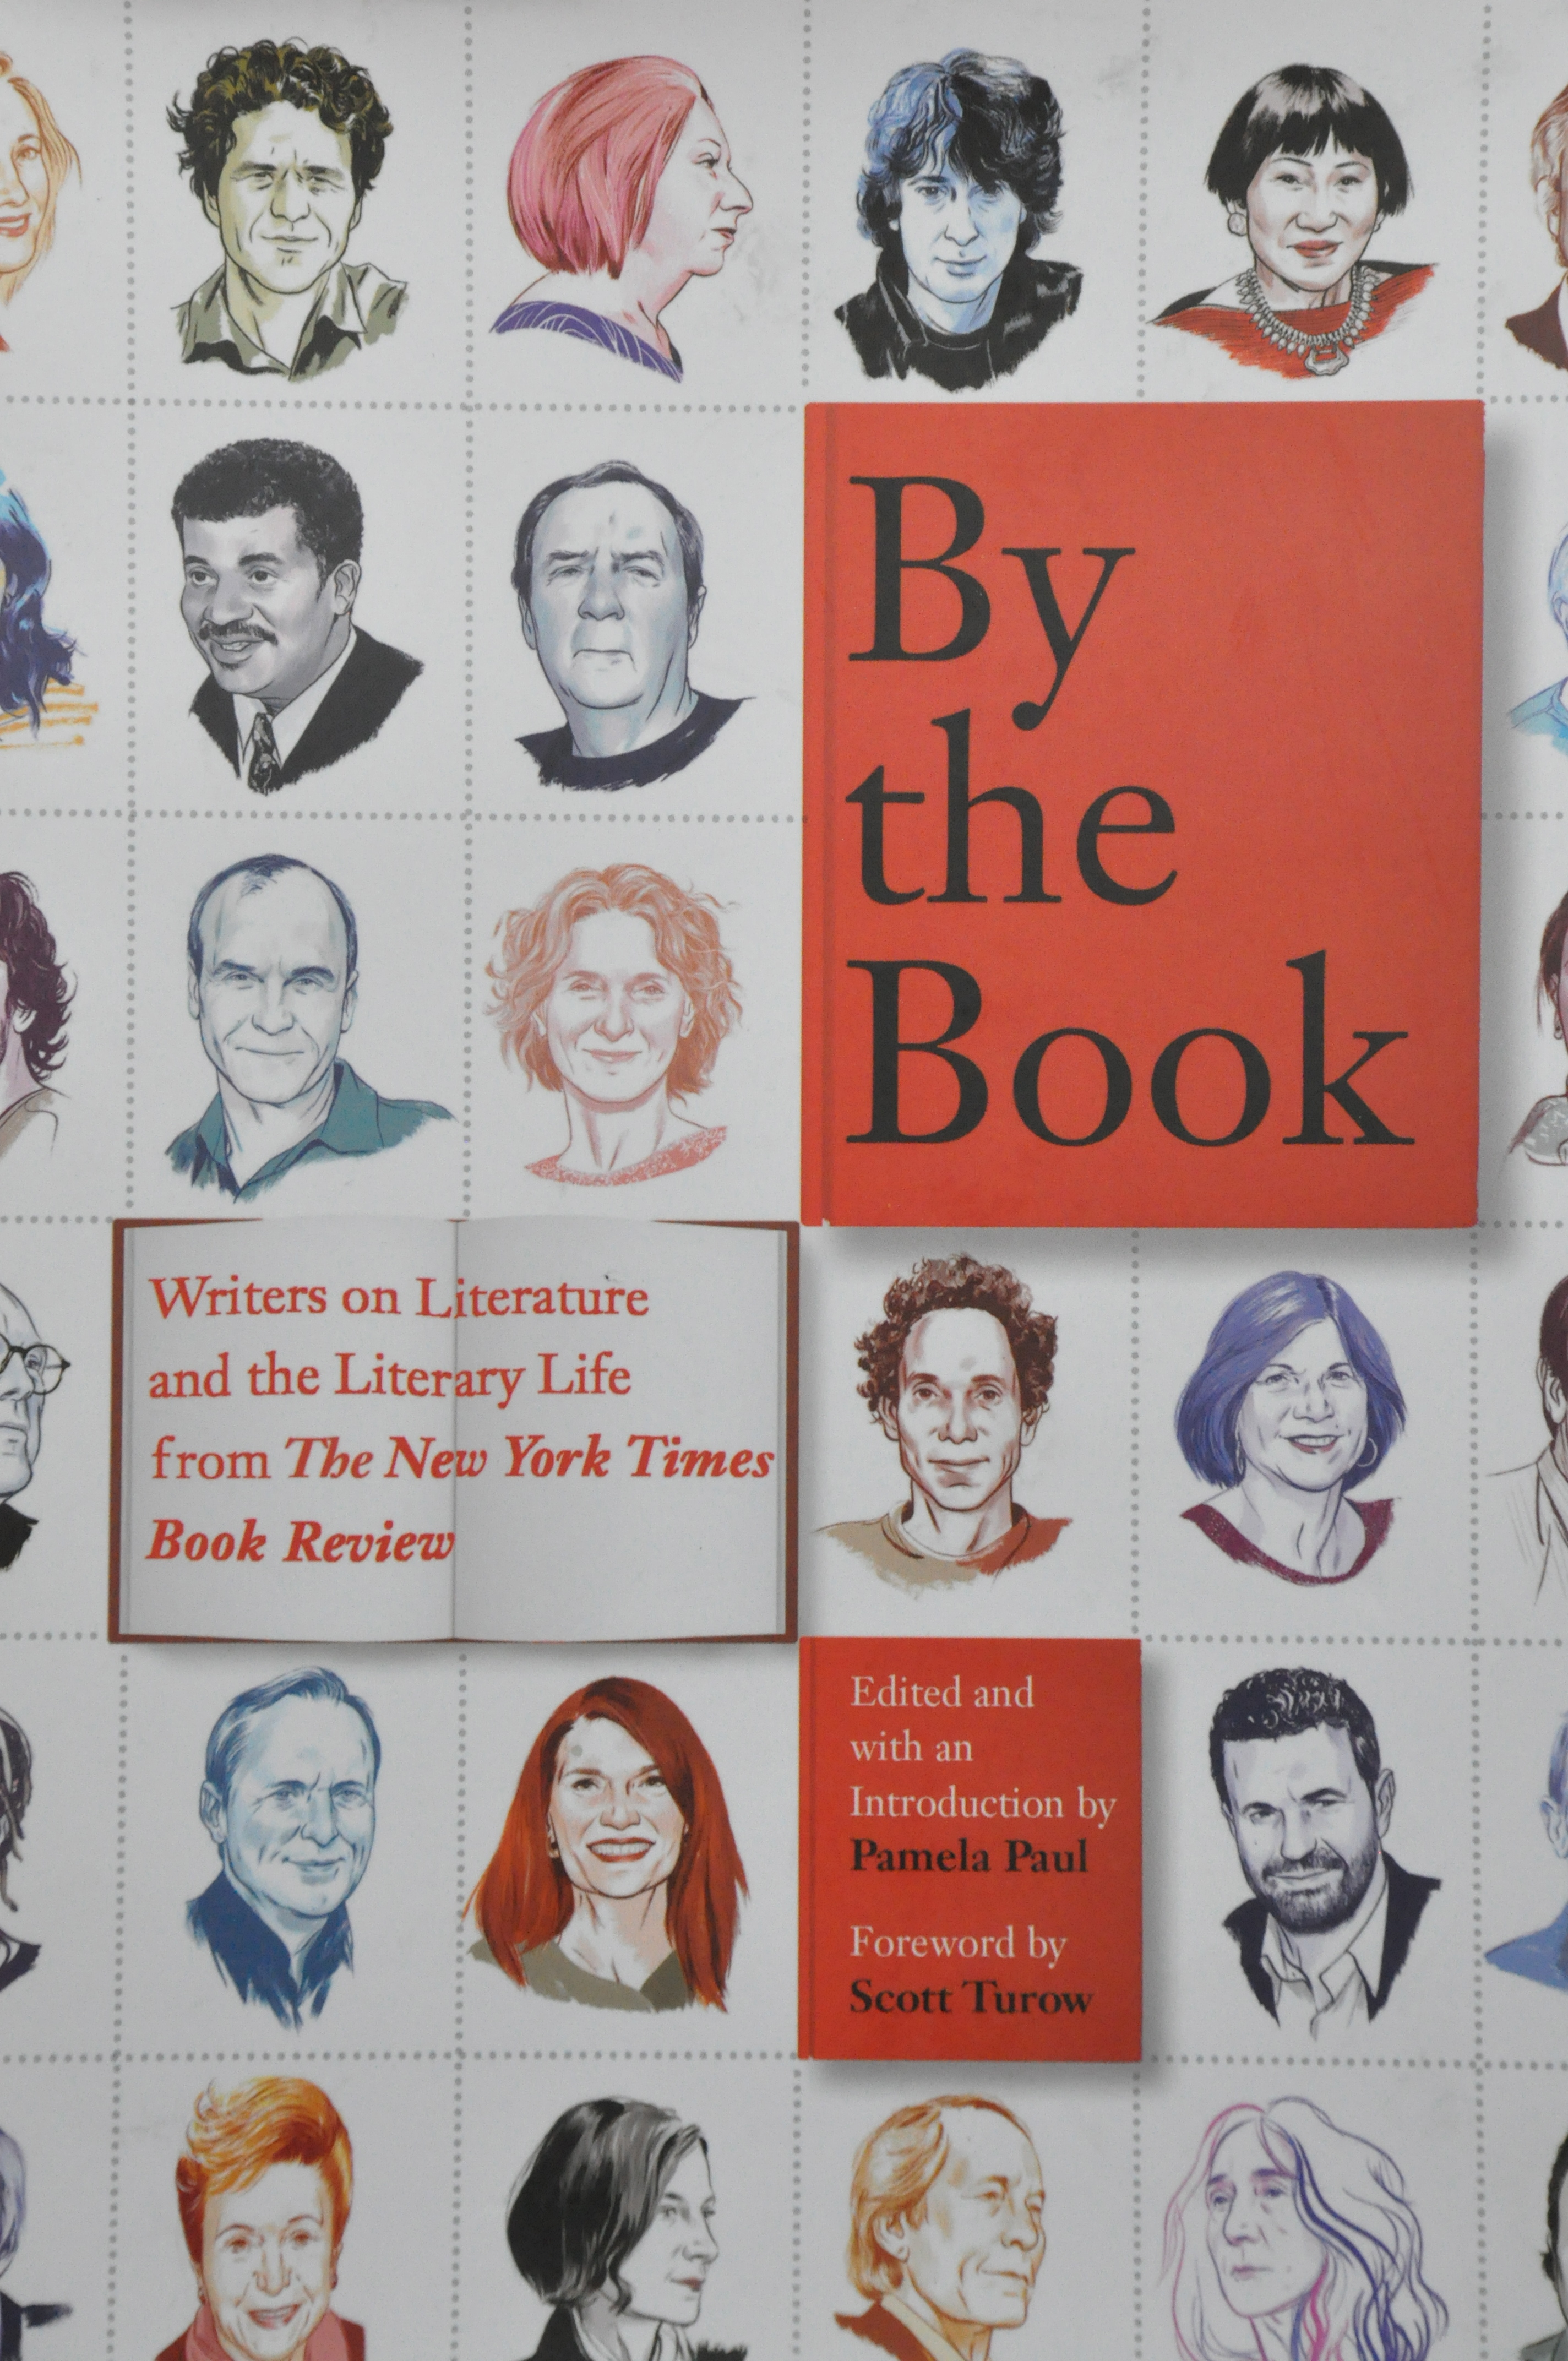 'By the Book' goes inside the minds of writers